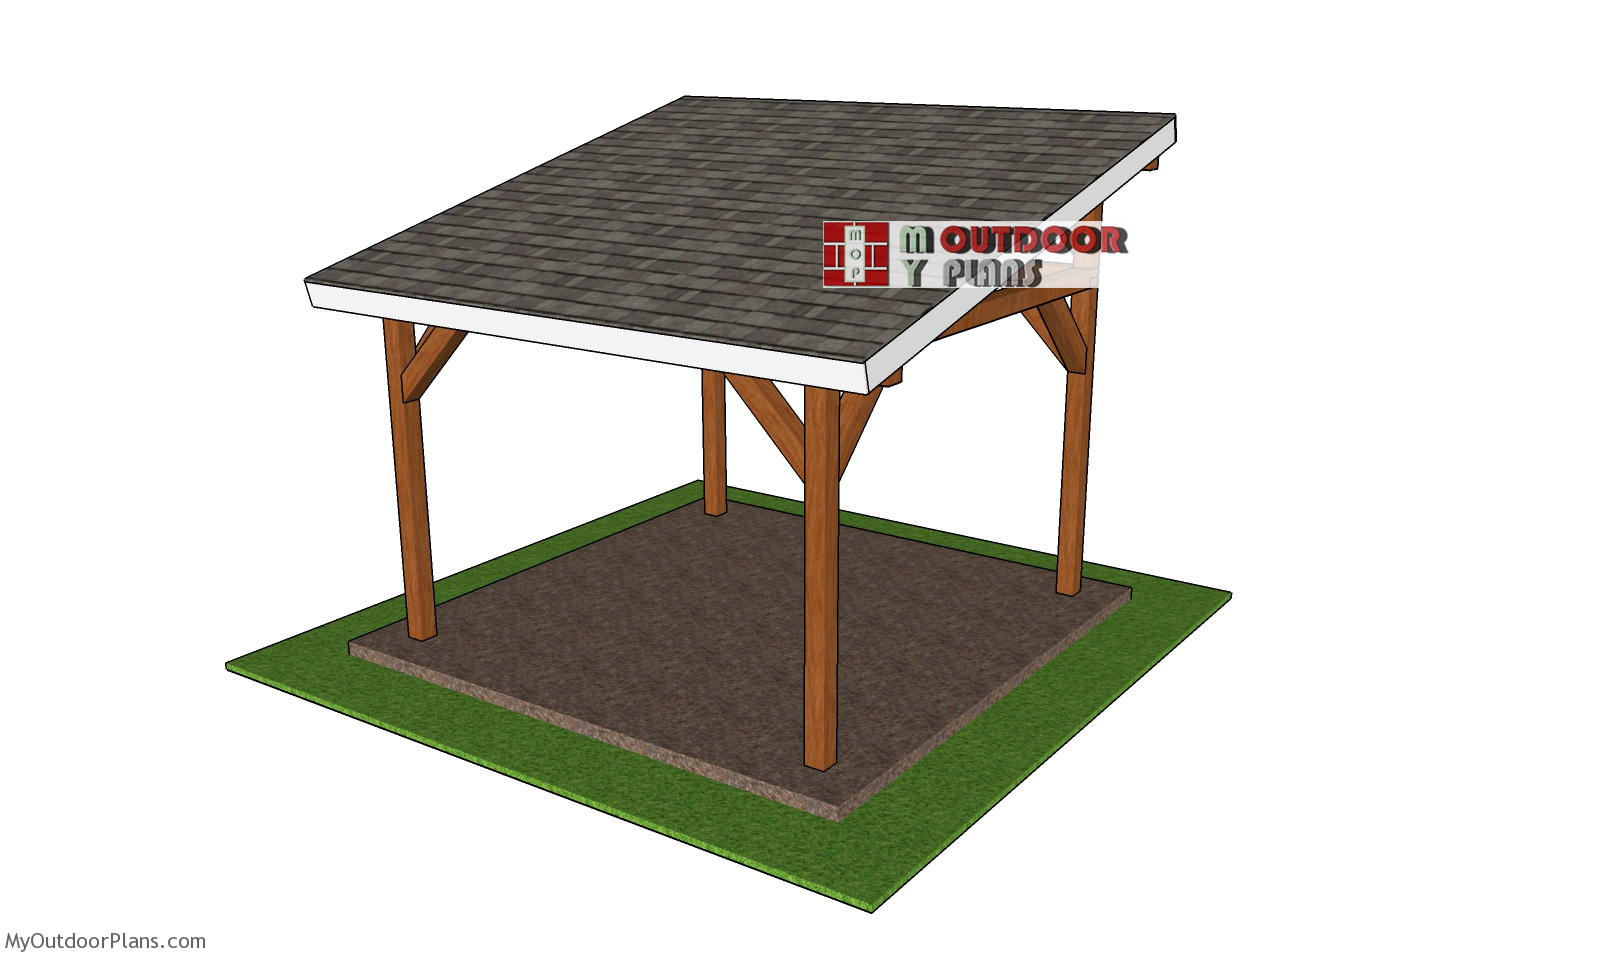 12x12 Lean to Pavilion - Free DIY Plans